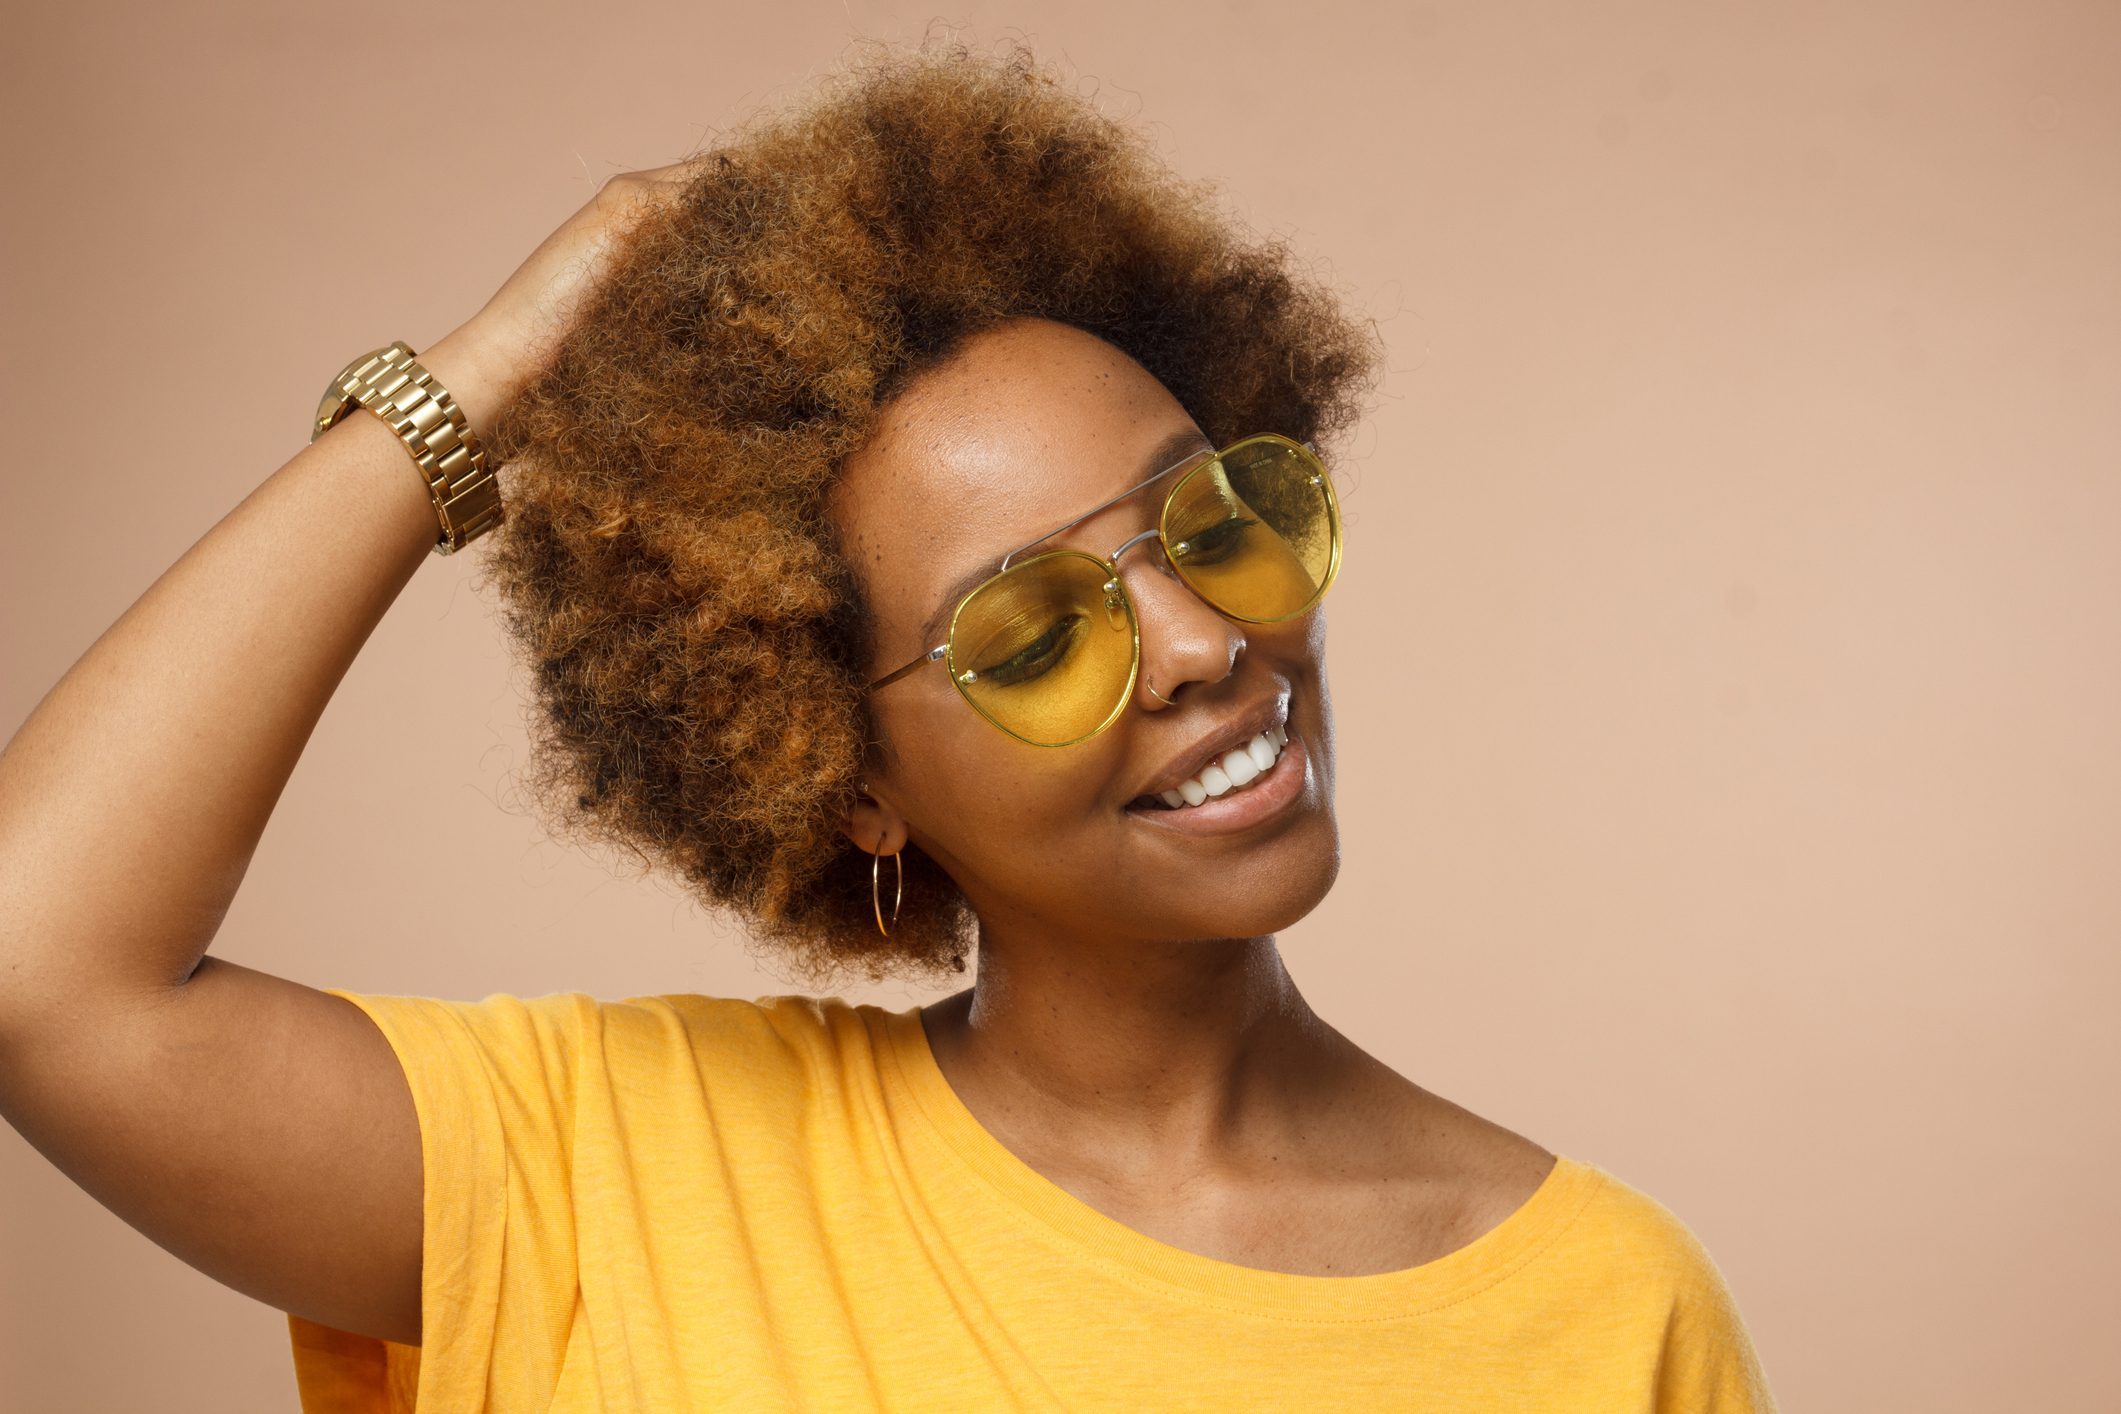 Studio closeup of attractive dark-skinned woman pictured against beige background wearing sunglasses and wristwatch looking down with charming smile as if dreaming or thinking about nice moments